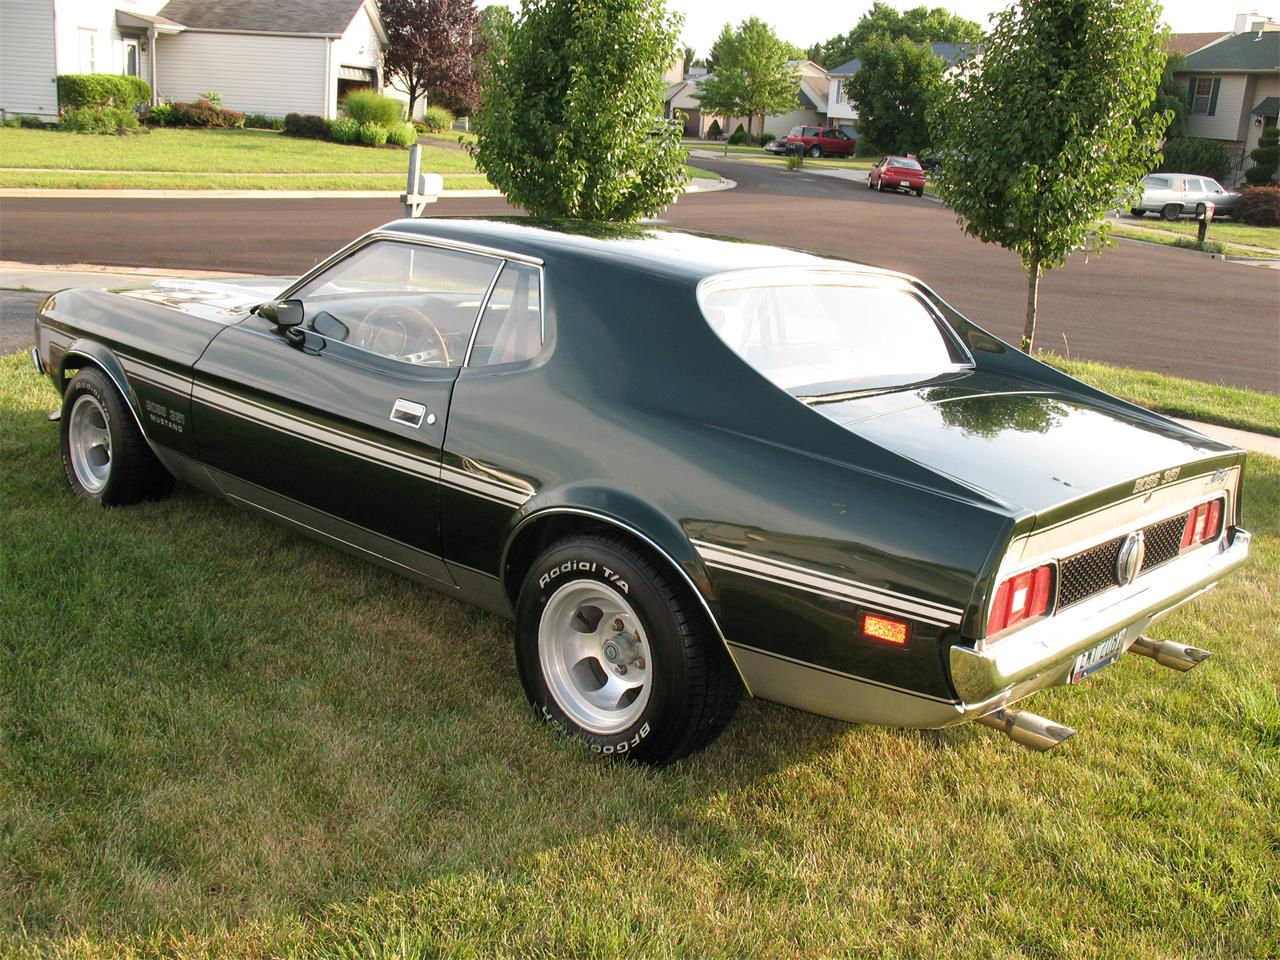 Large Picture of 1972 Ford Mustang - $9,995.00 Offered by a Private Seller - E7KK